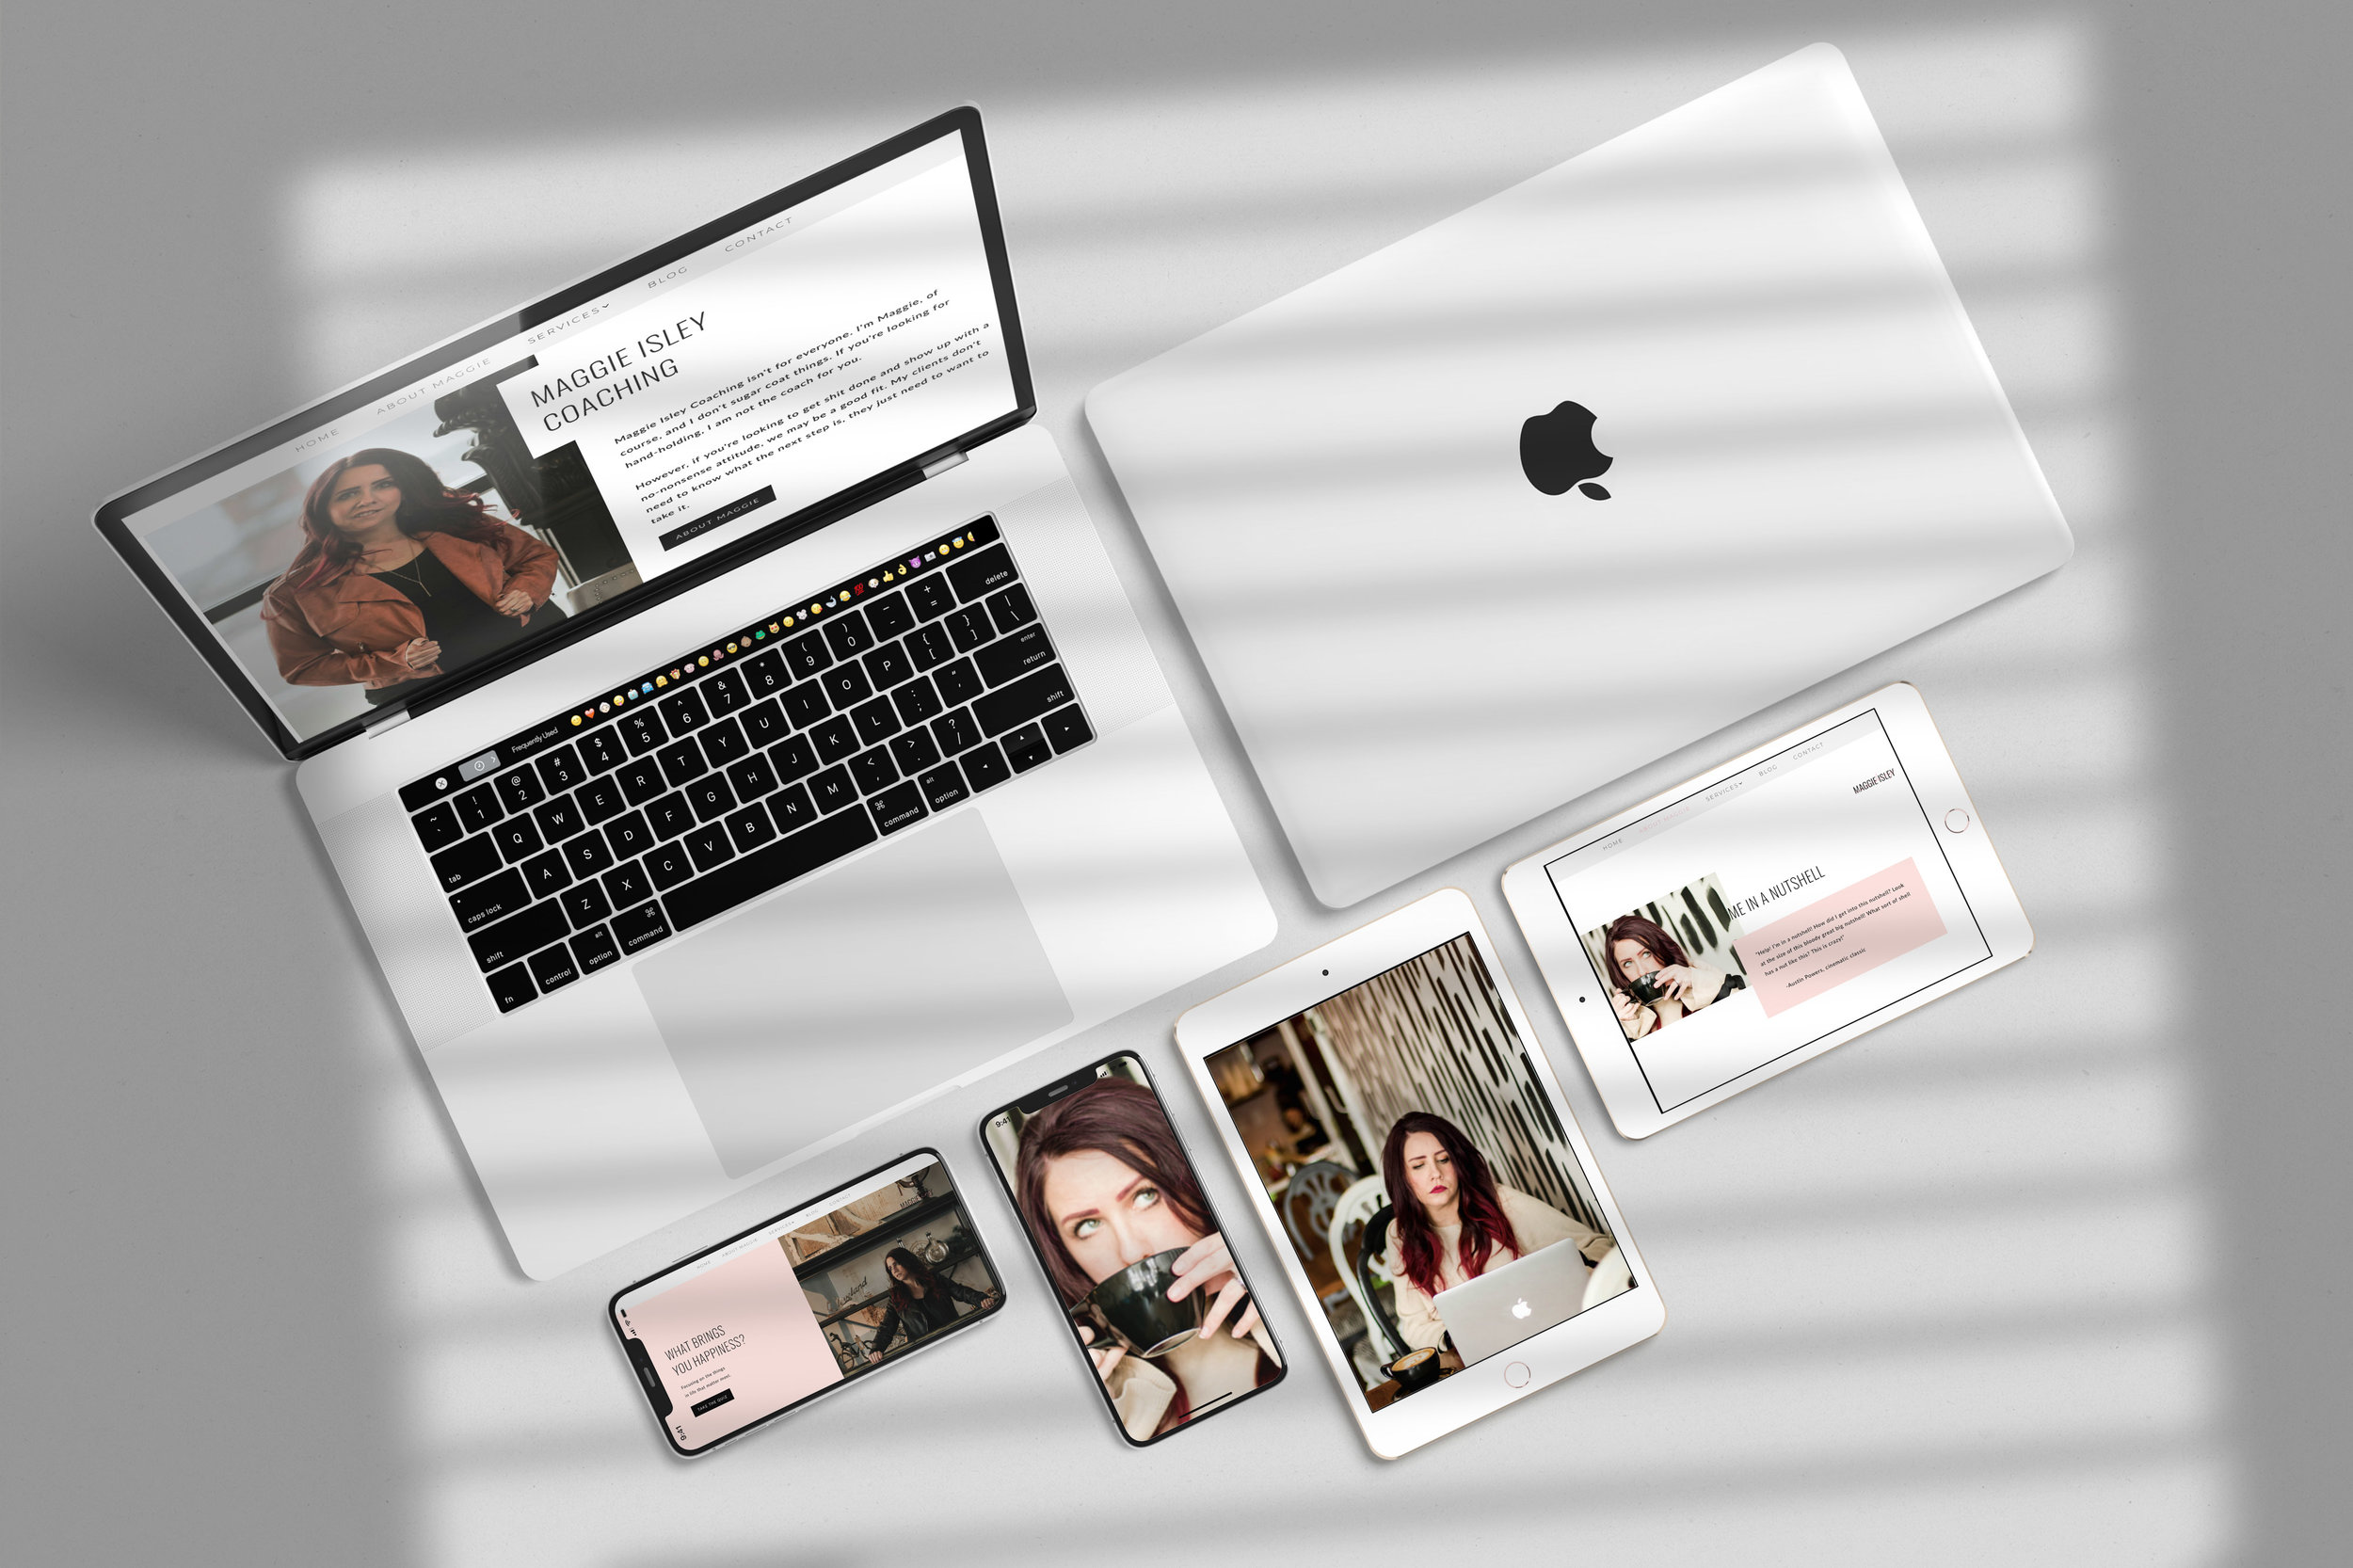 Client, Maggie Isley, designed her own website with the help of Tall Hair Creative photography - maggieisleycoaching.com